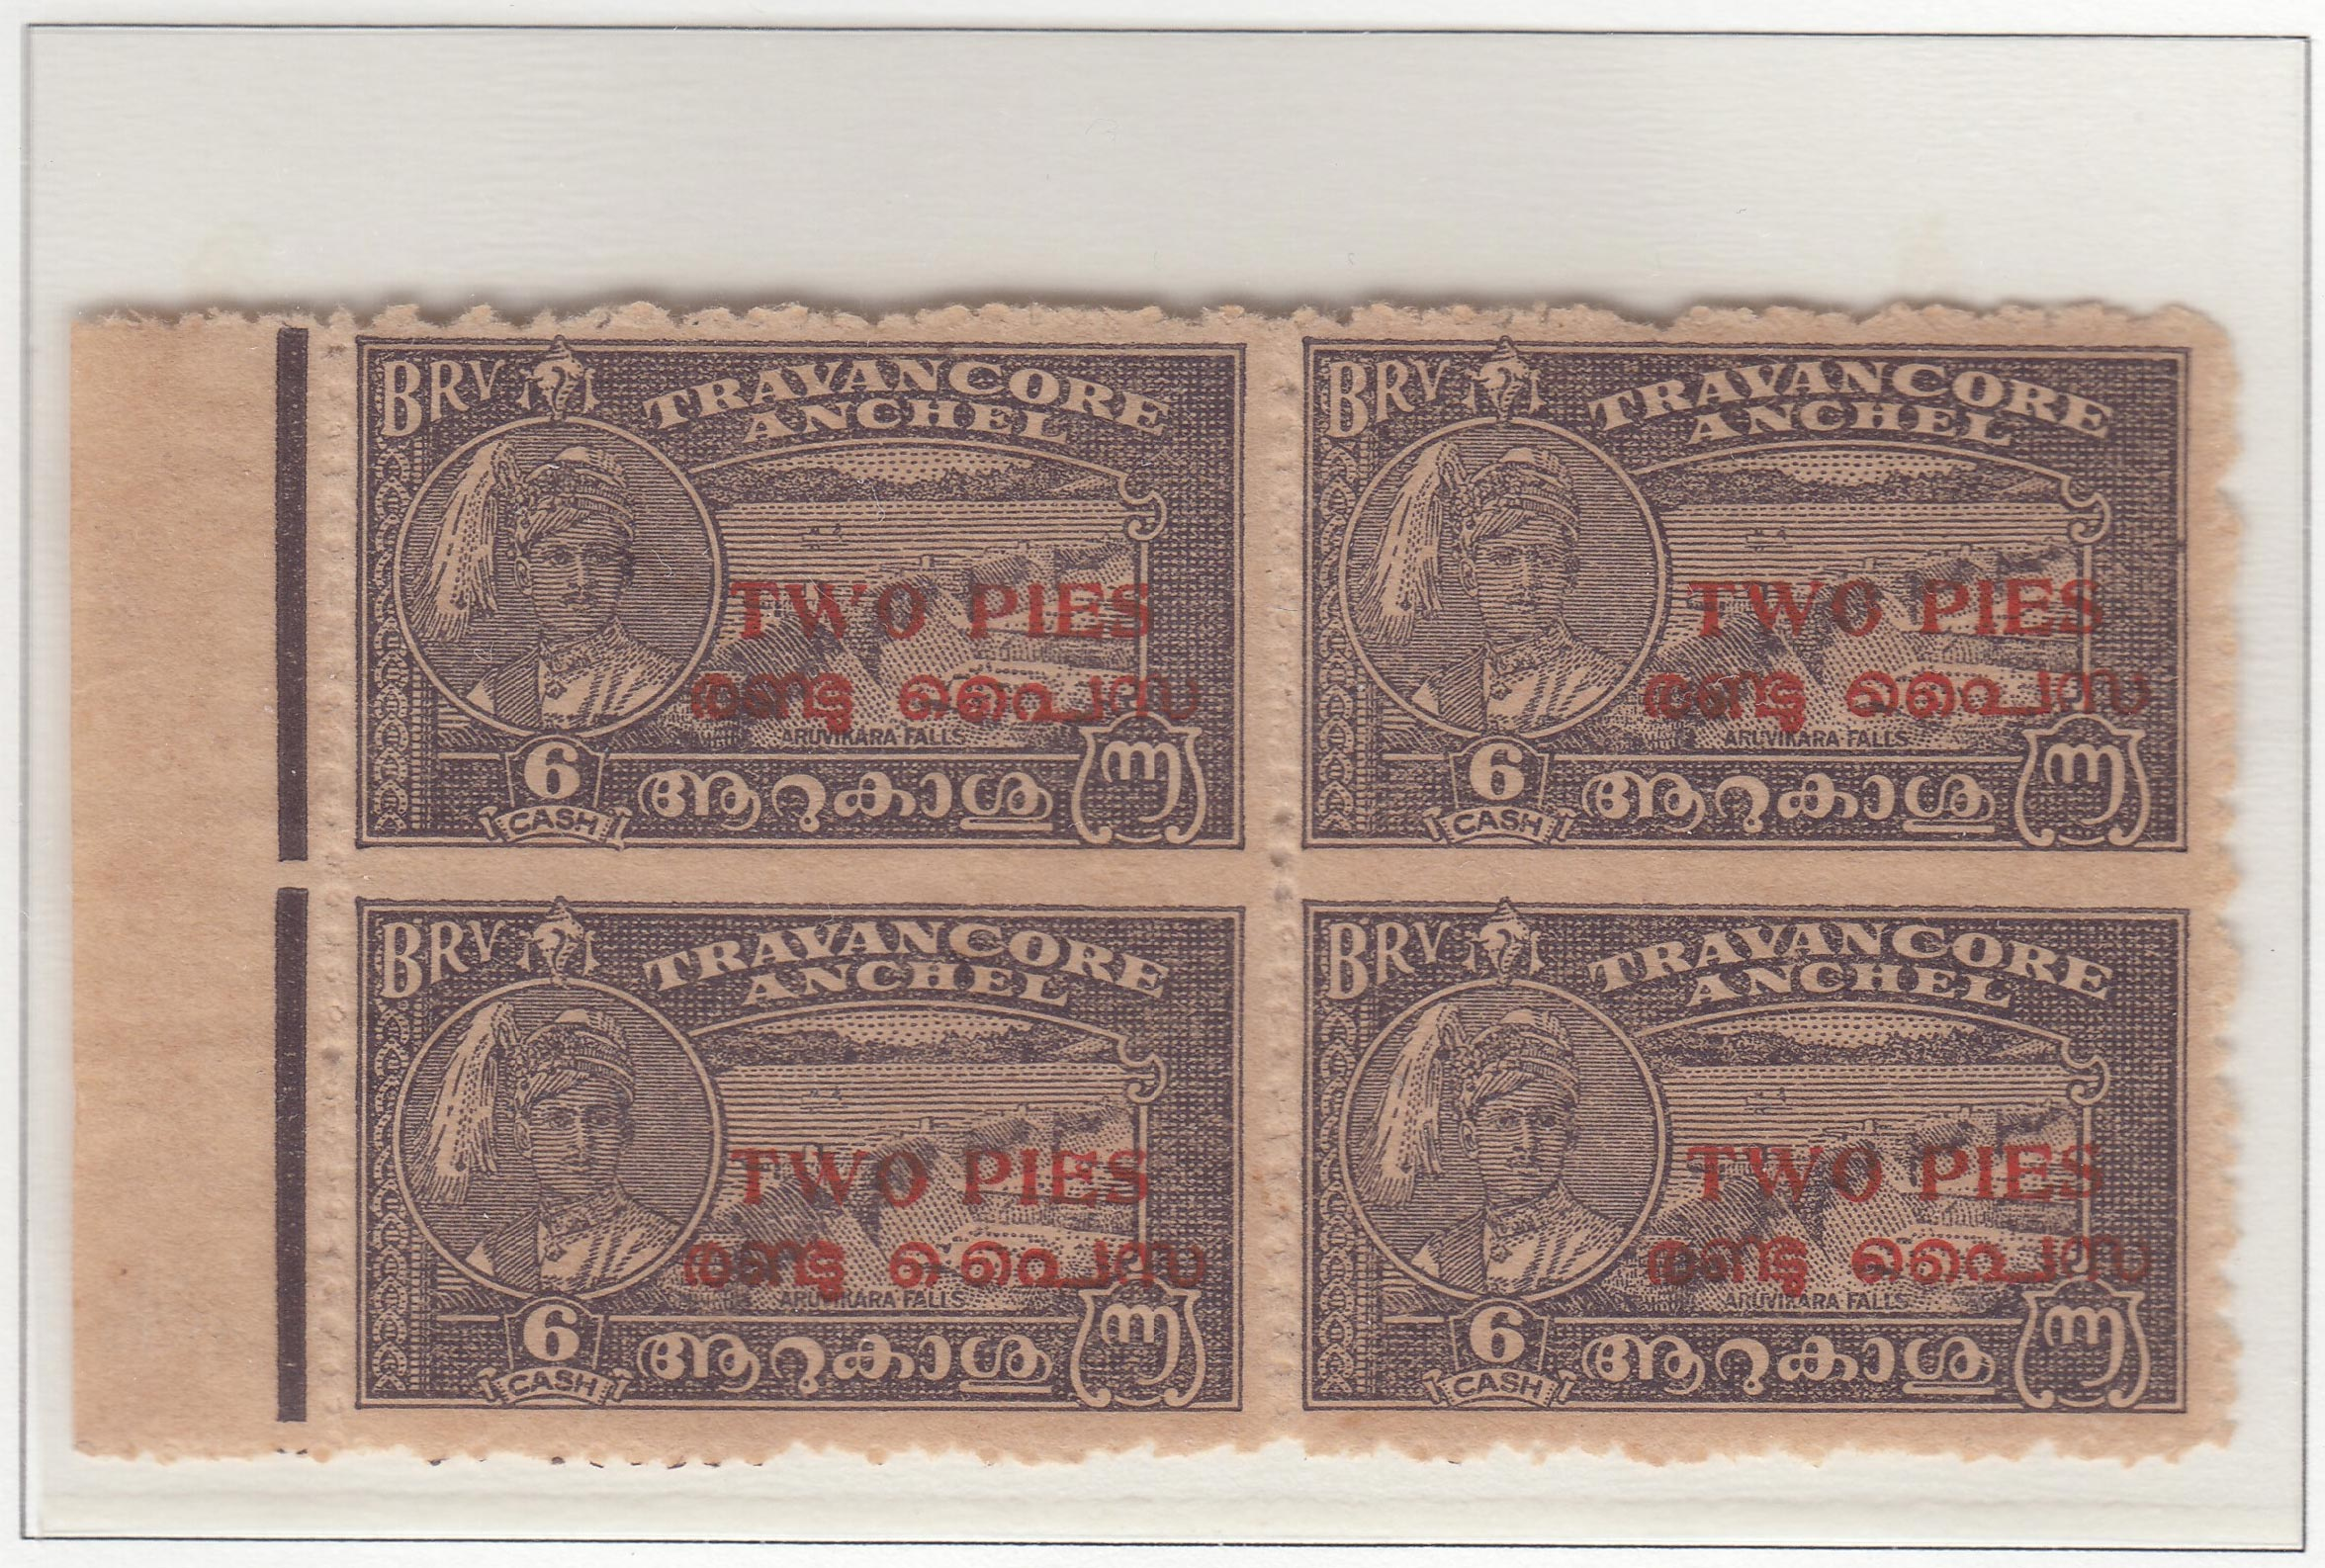 travancore-cochin-06-two-pies-on-six-cash-blackish-violet-imperforate-between-horizontally